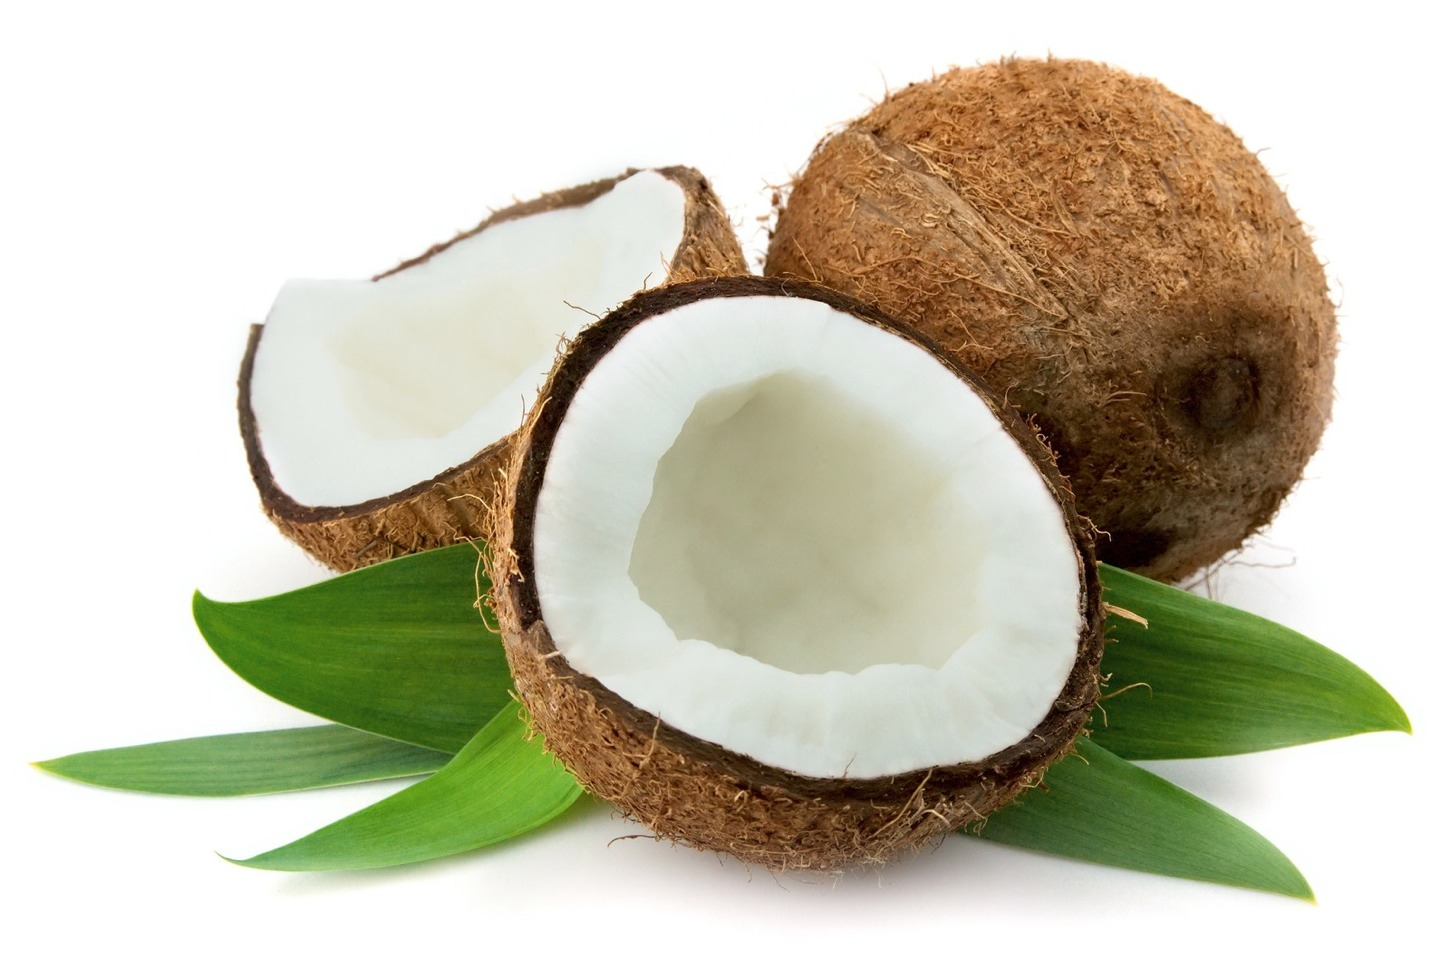 Coconut. Low in carbs. It reduces hunger.